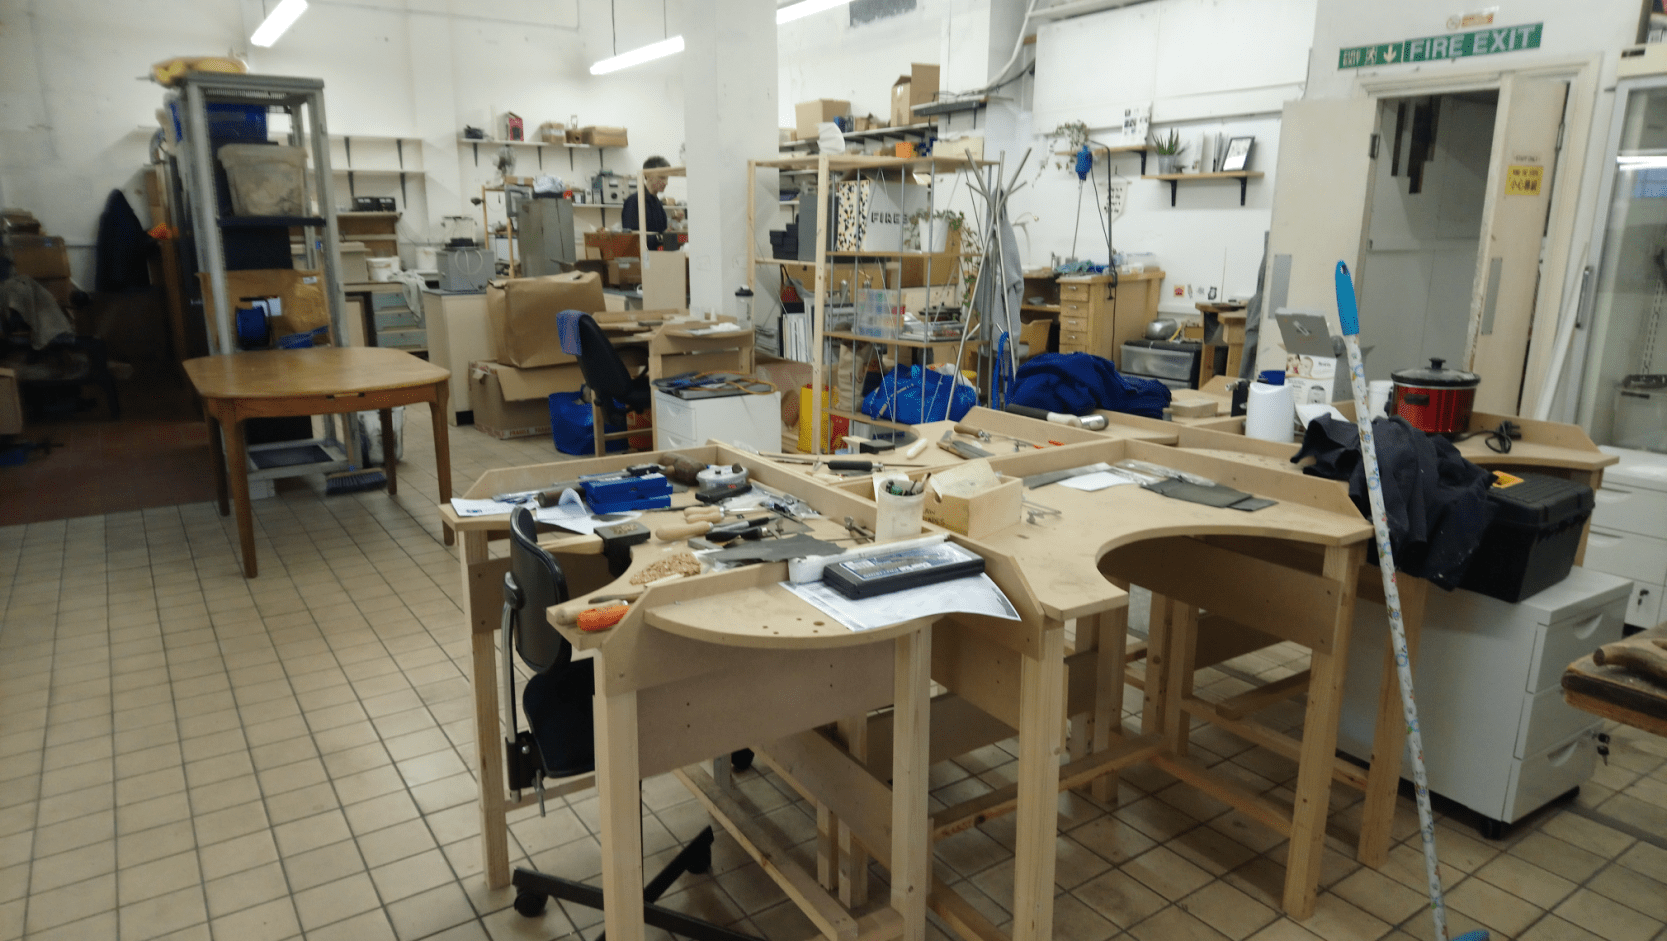 Fabrication Crafts Leeds creative workspace